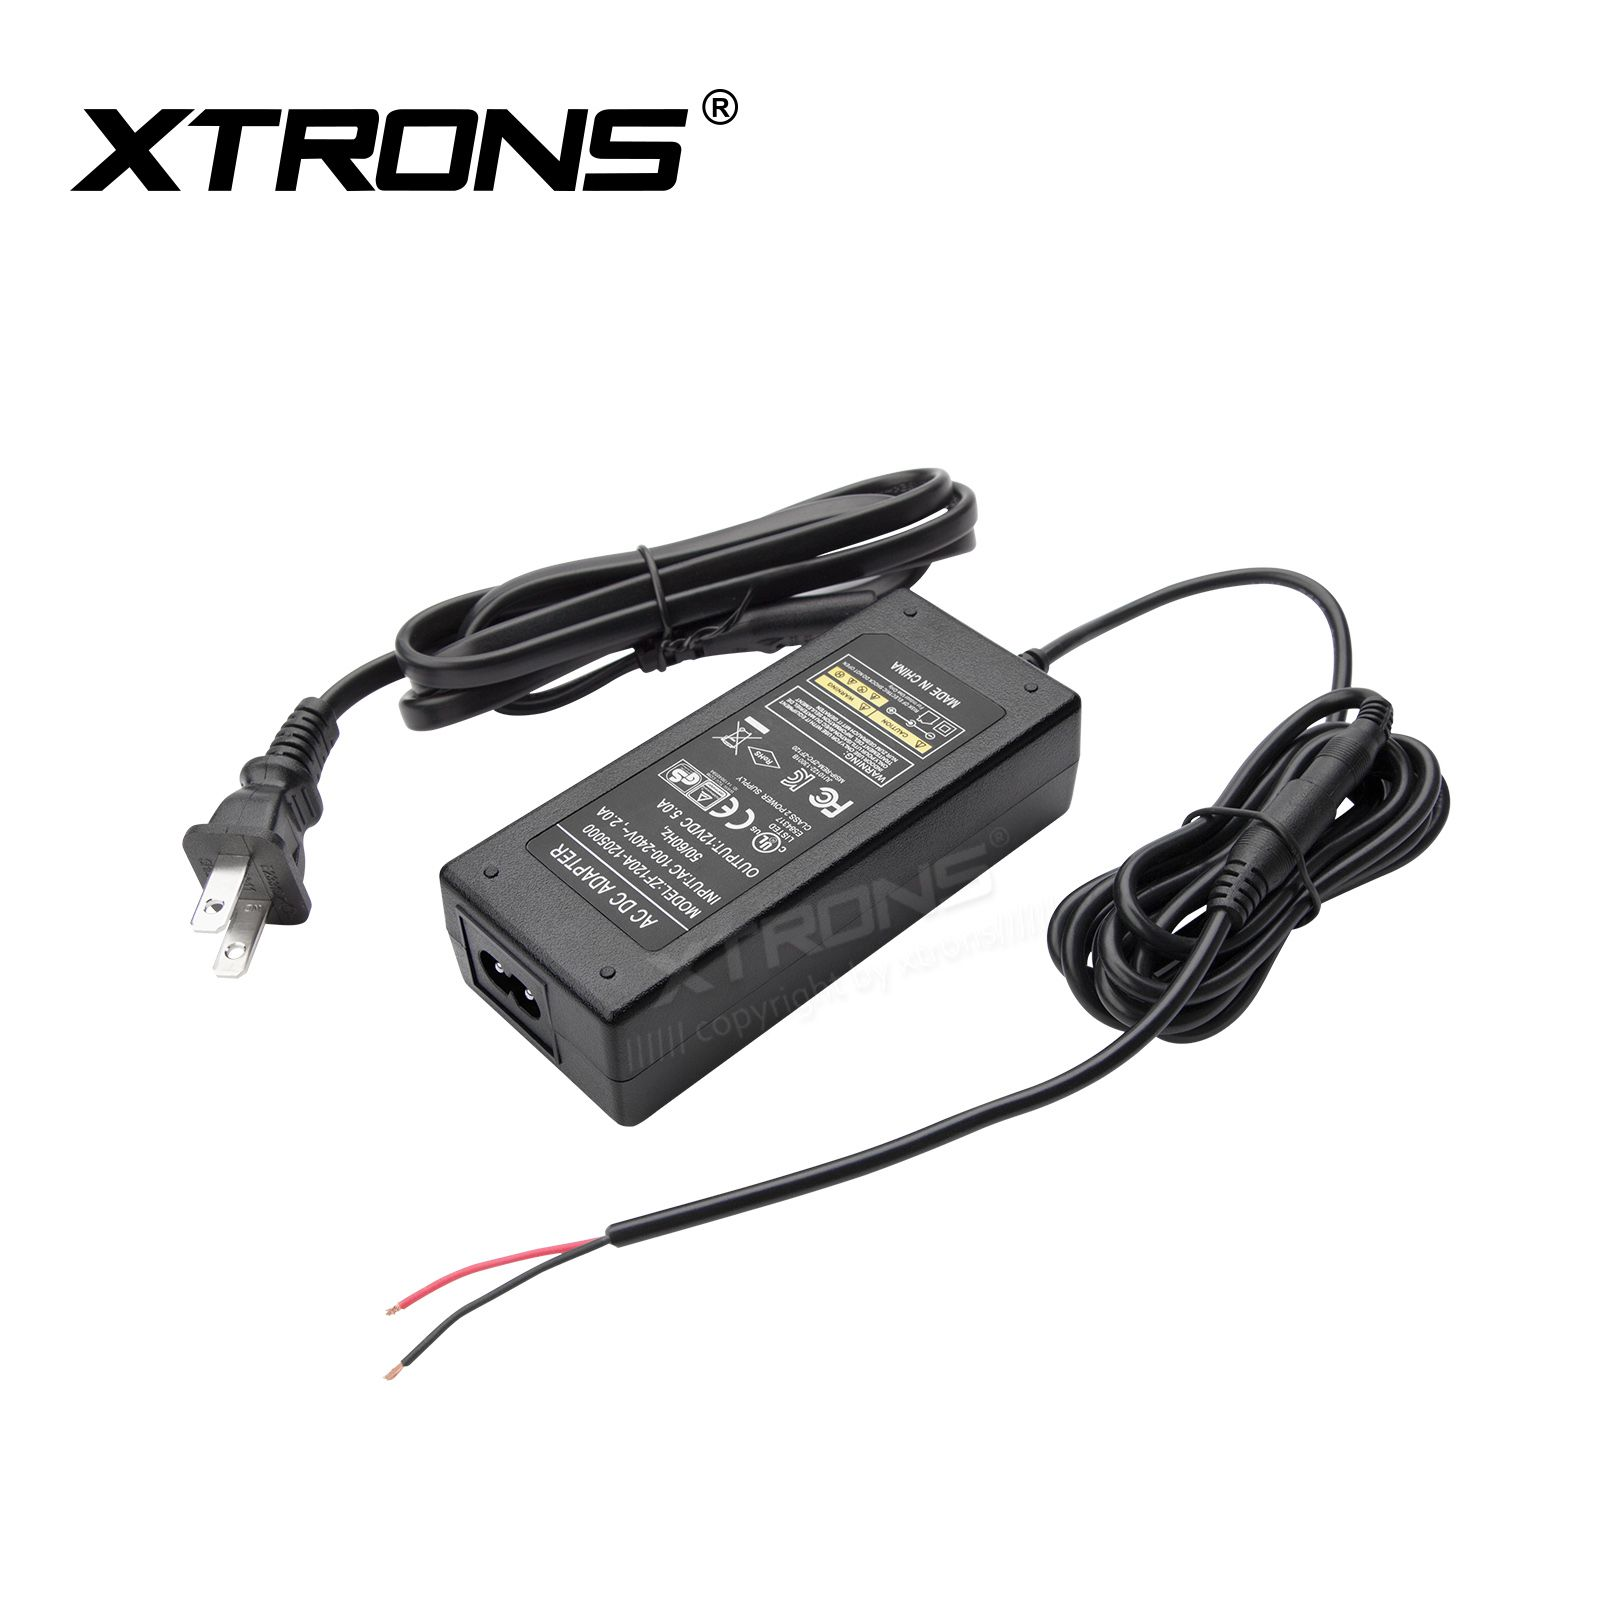 Us 2 Pin Ac Dc Power Supply Adapter Plug For Xtrons Overhead Units Home Use Adapter Power Adapter Adapter Plug